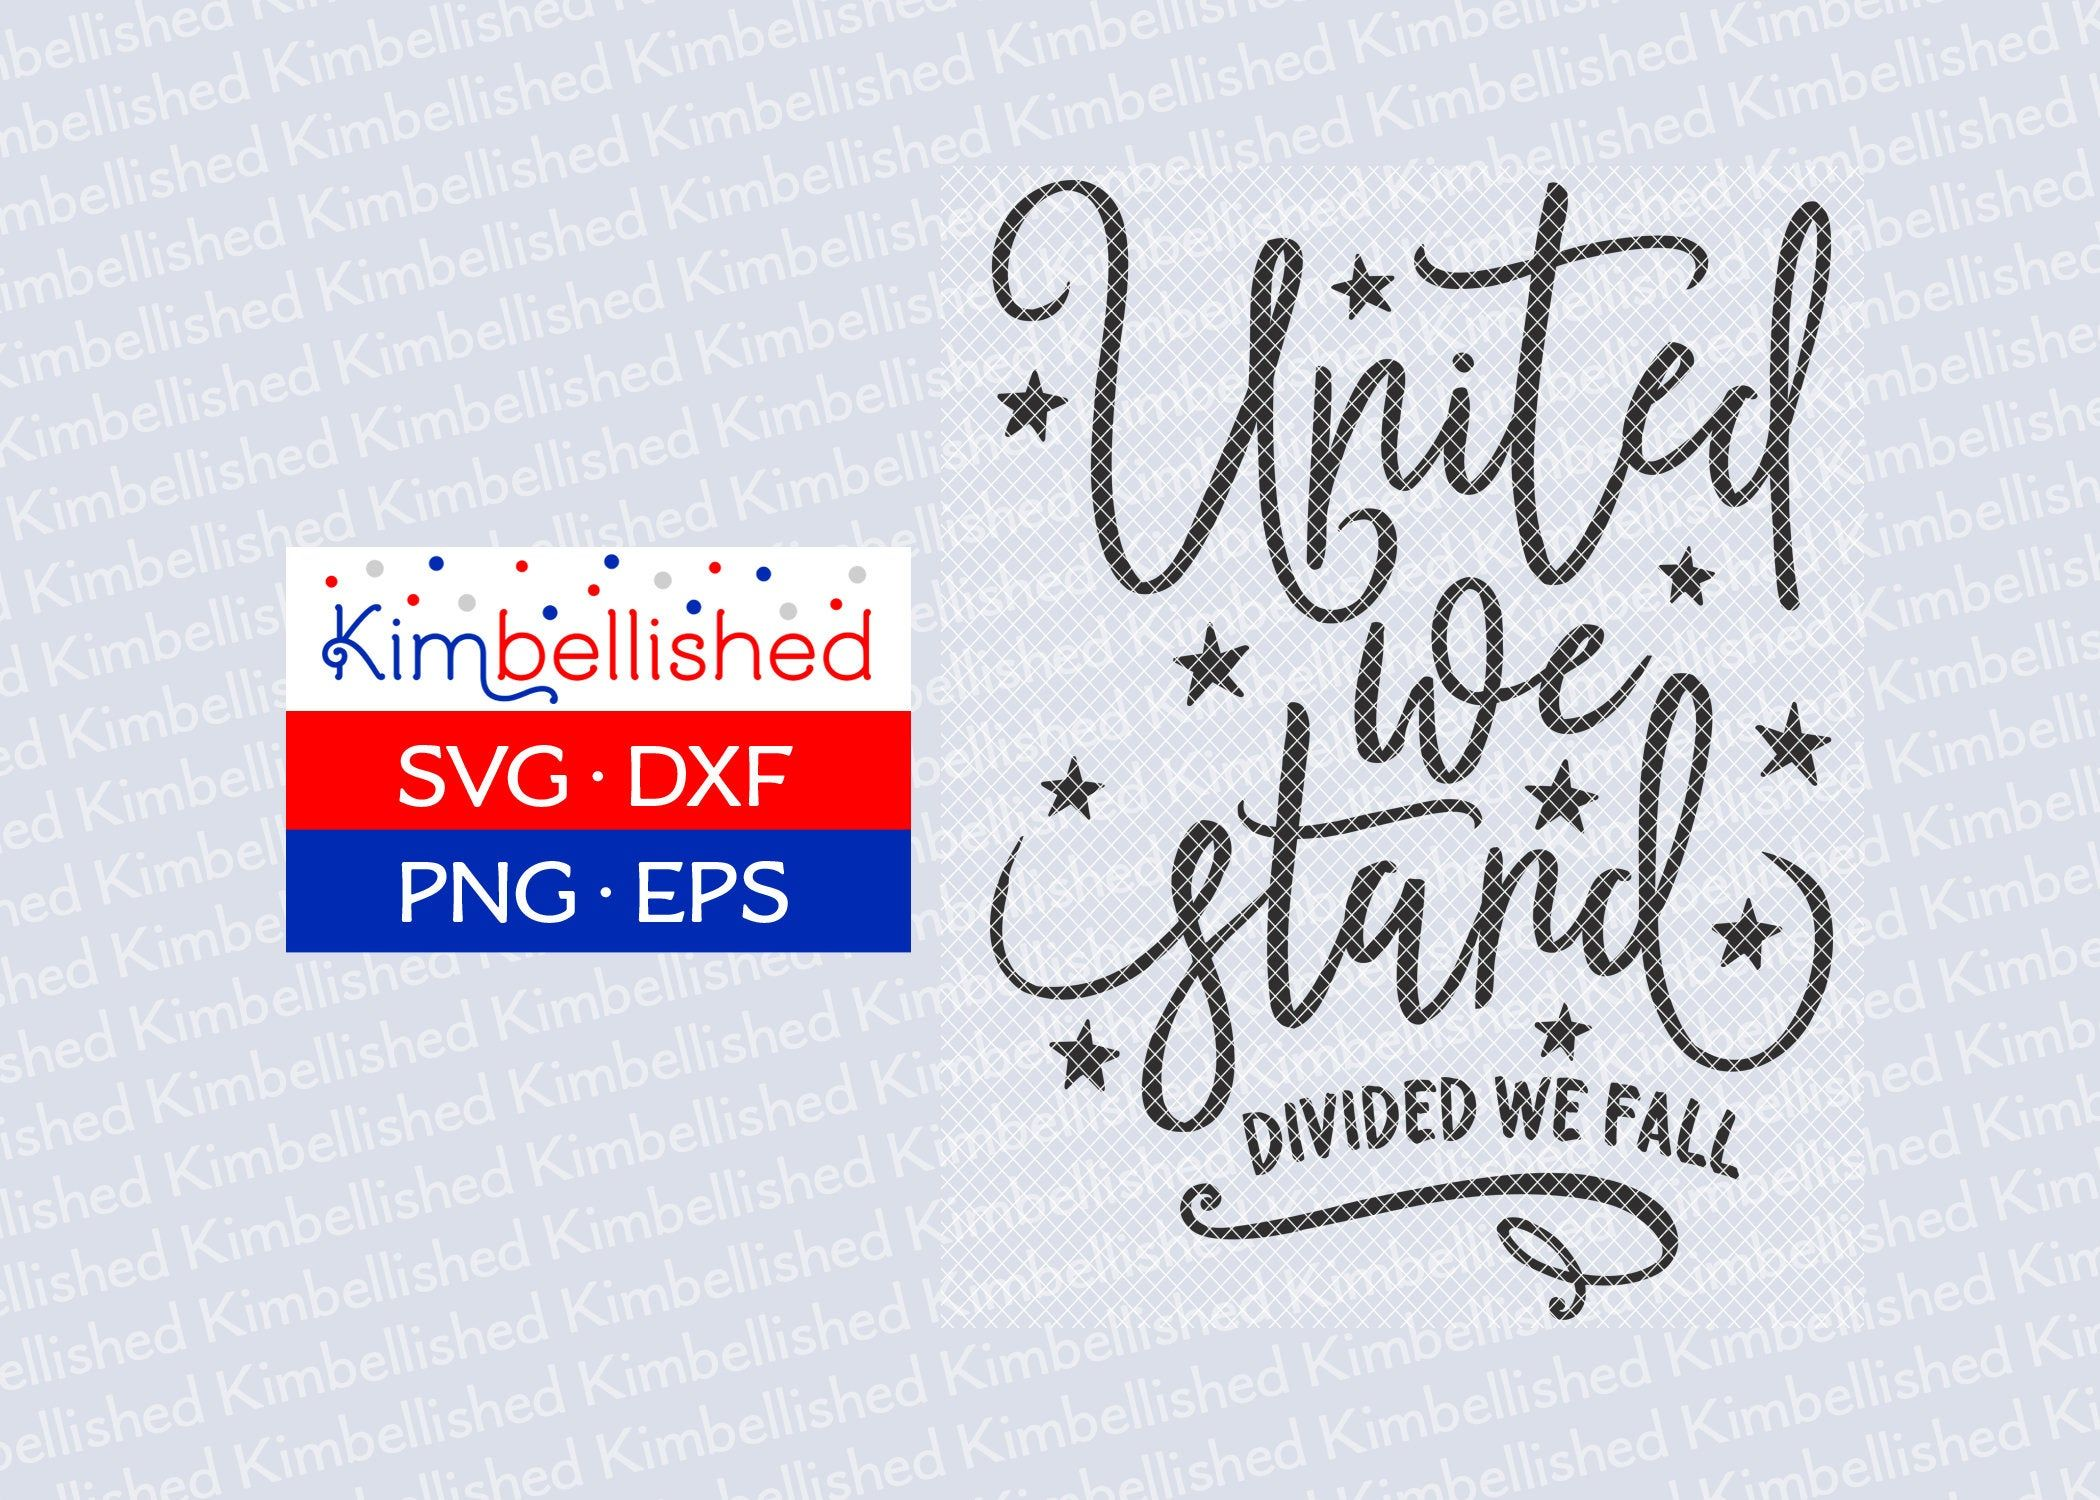 Pin on SVG Cutting Files by Kimbellished